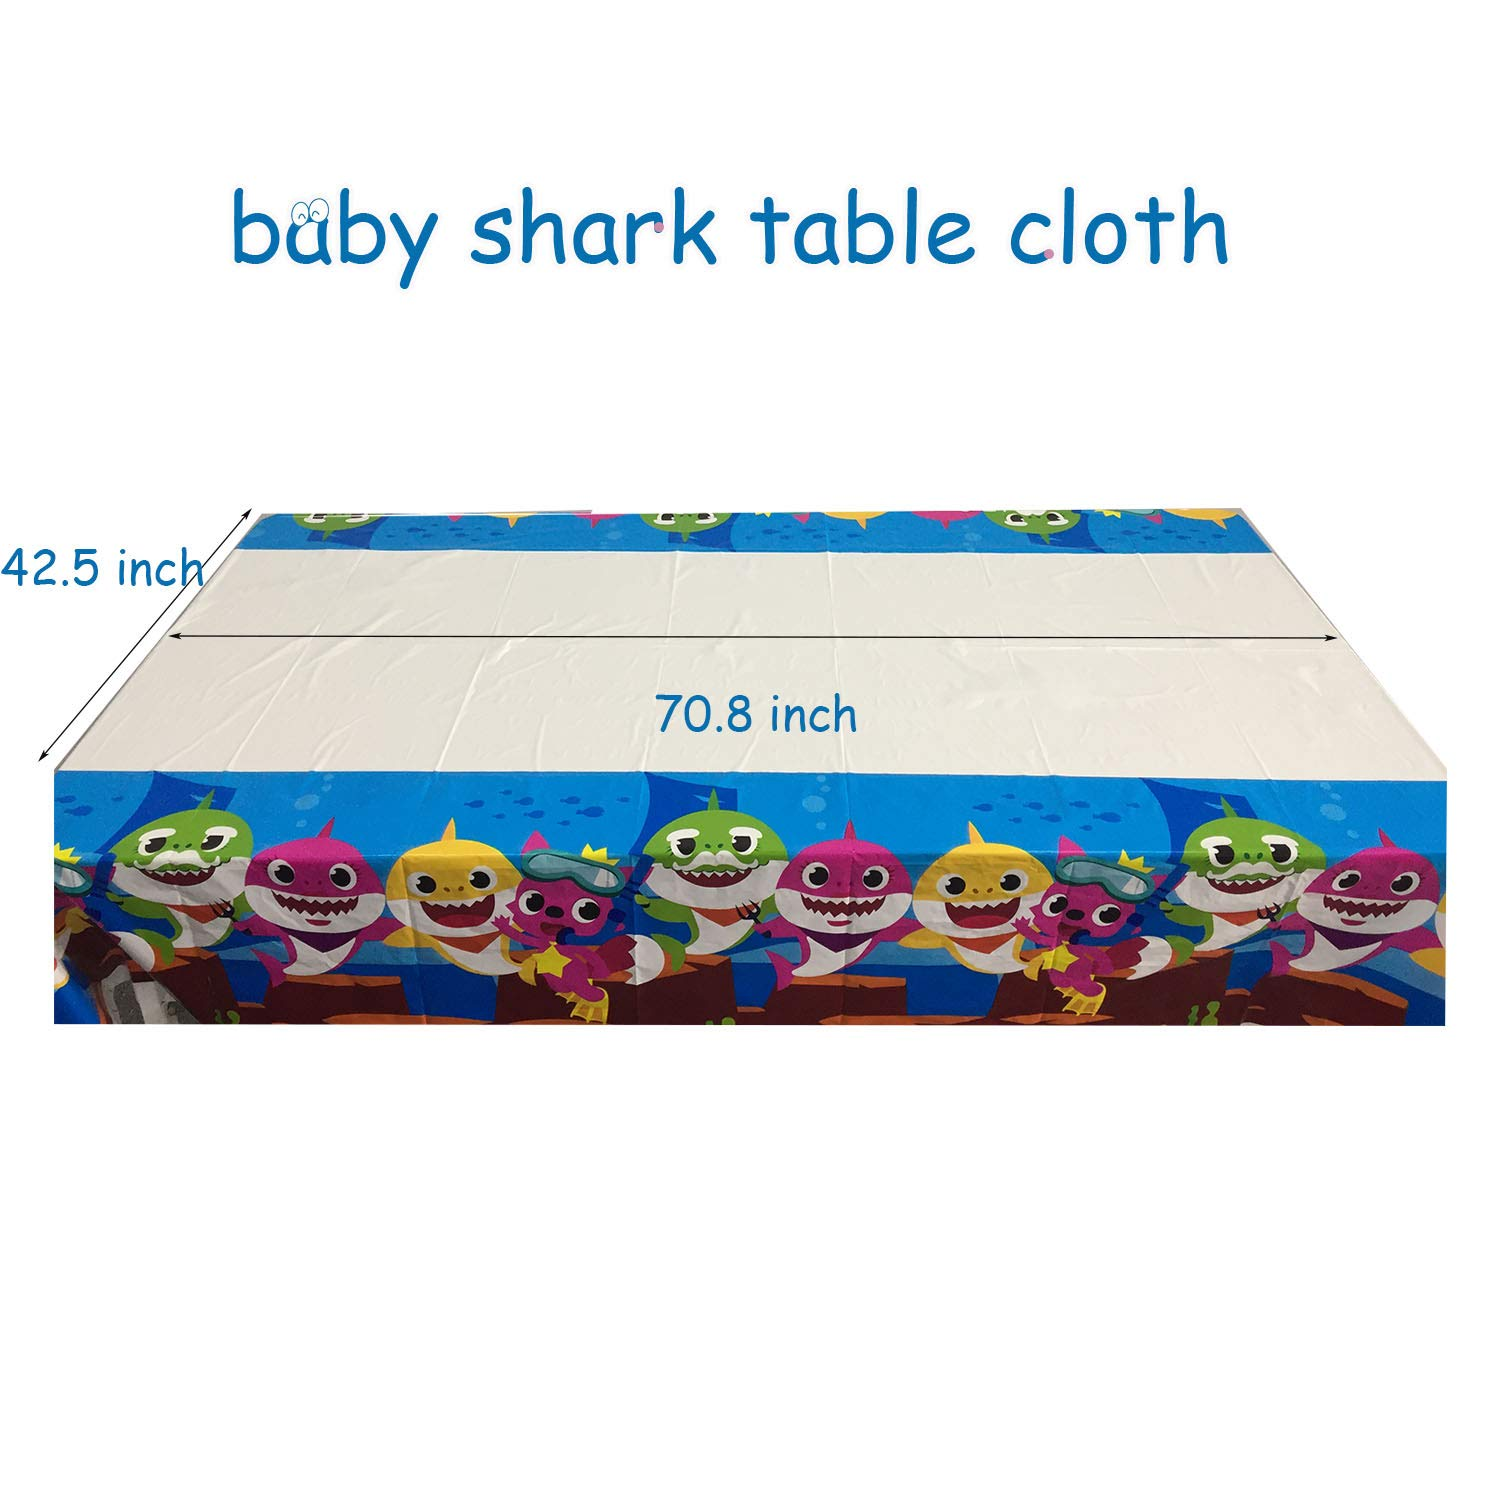 Baby Shark Party Supplies Set - 109 Pcs Baby Shark Themed Birthday Decorations Includes Disposable Tableware Kit Blowing Dragon Paper Hat Gift Bag and Banner - Serves 10 Guest by AiParty (Image #7)